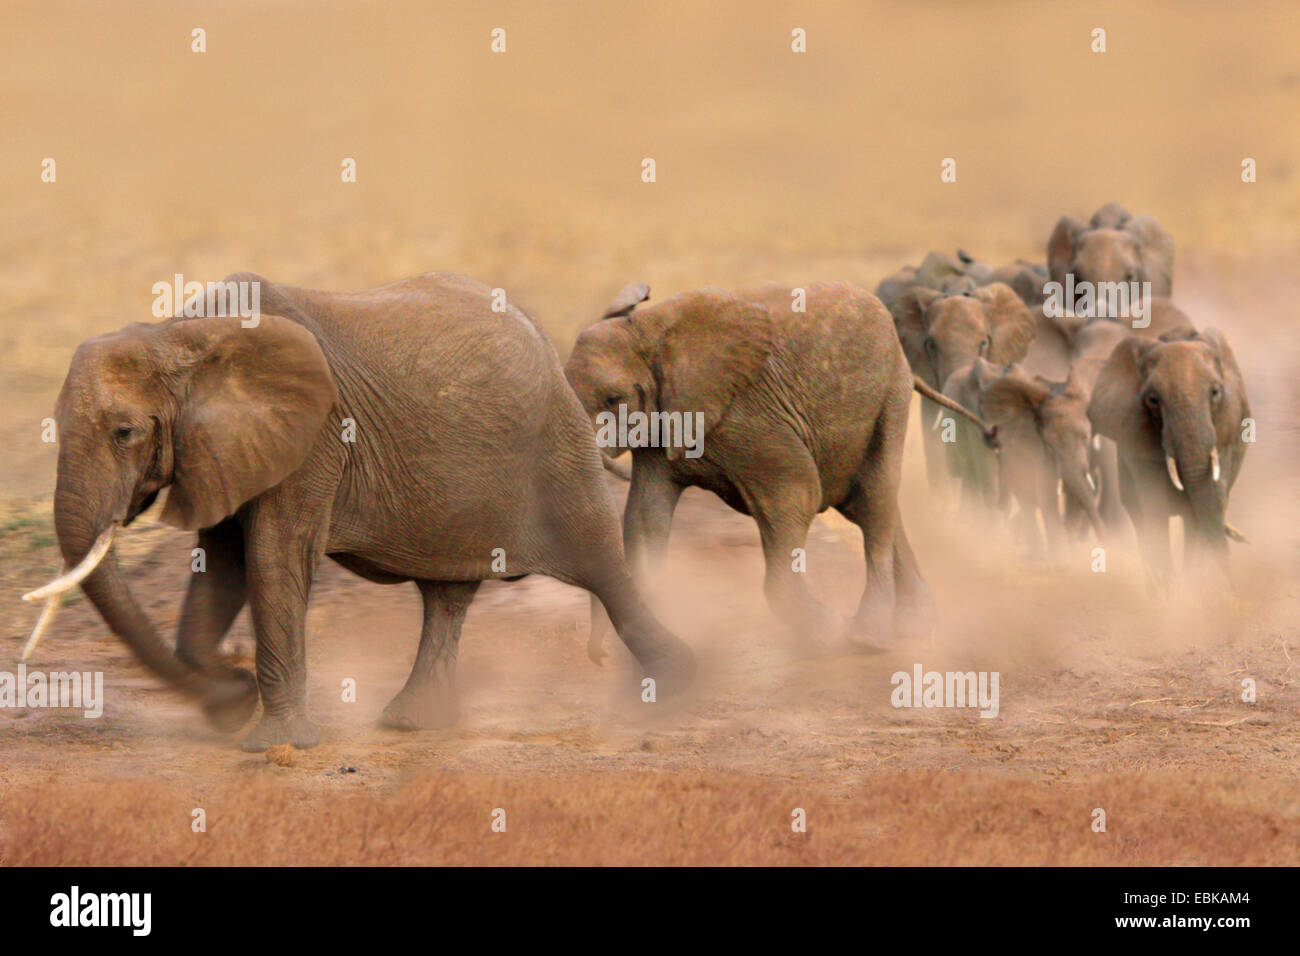 African elephant (Loxodonta africana), group walking quickly through the steppe and blowing up dust, Kenya, Amboseli - Stock Image